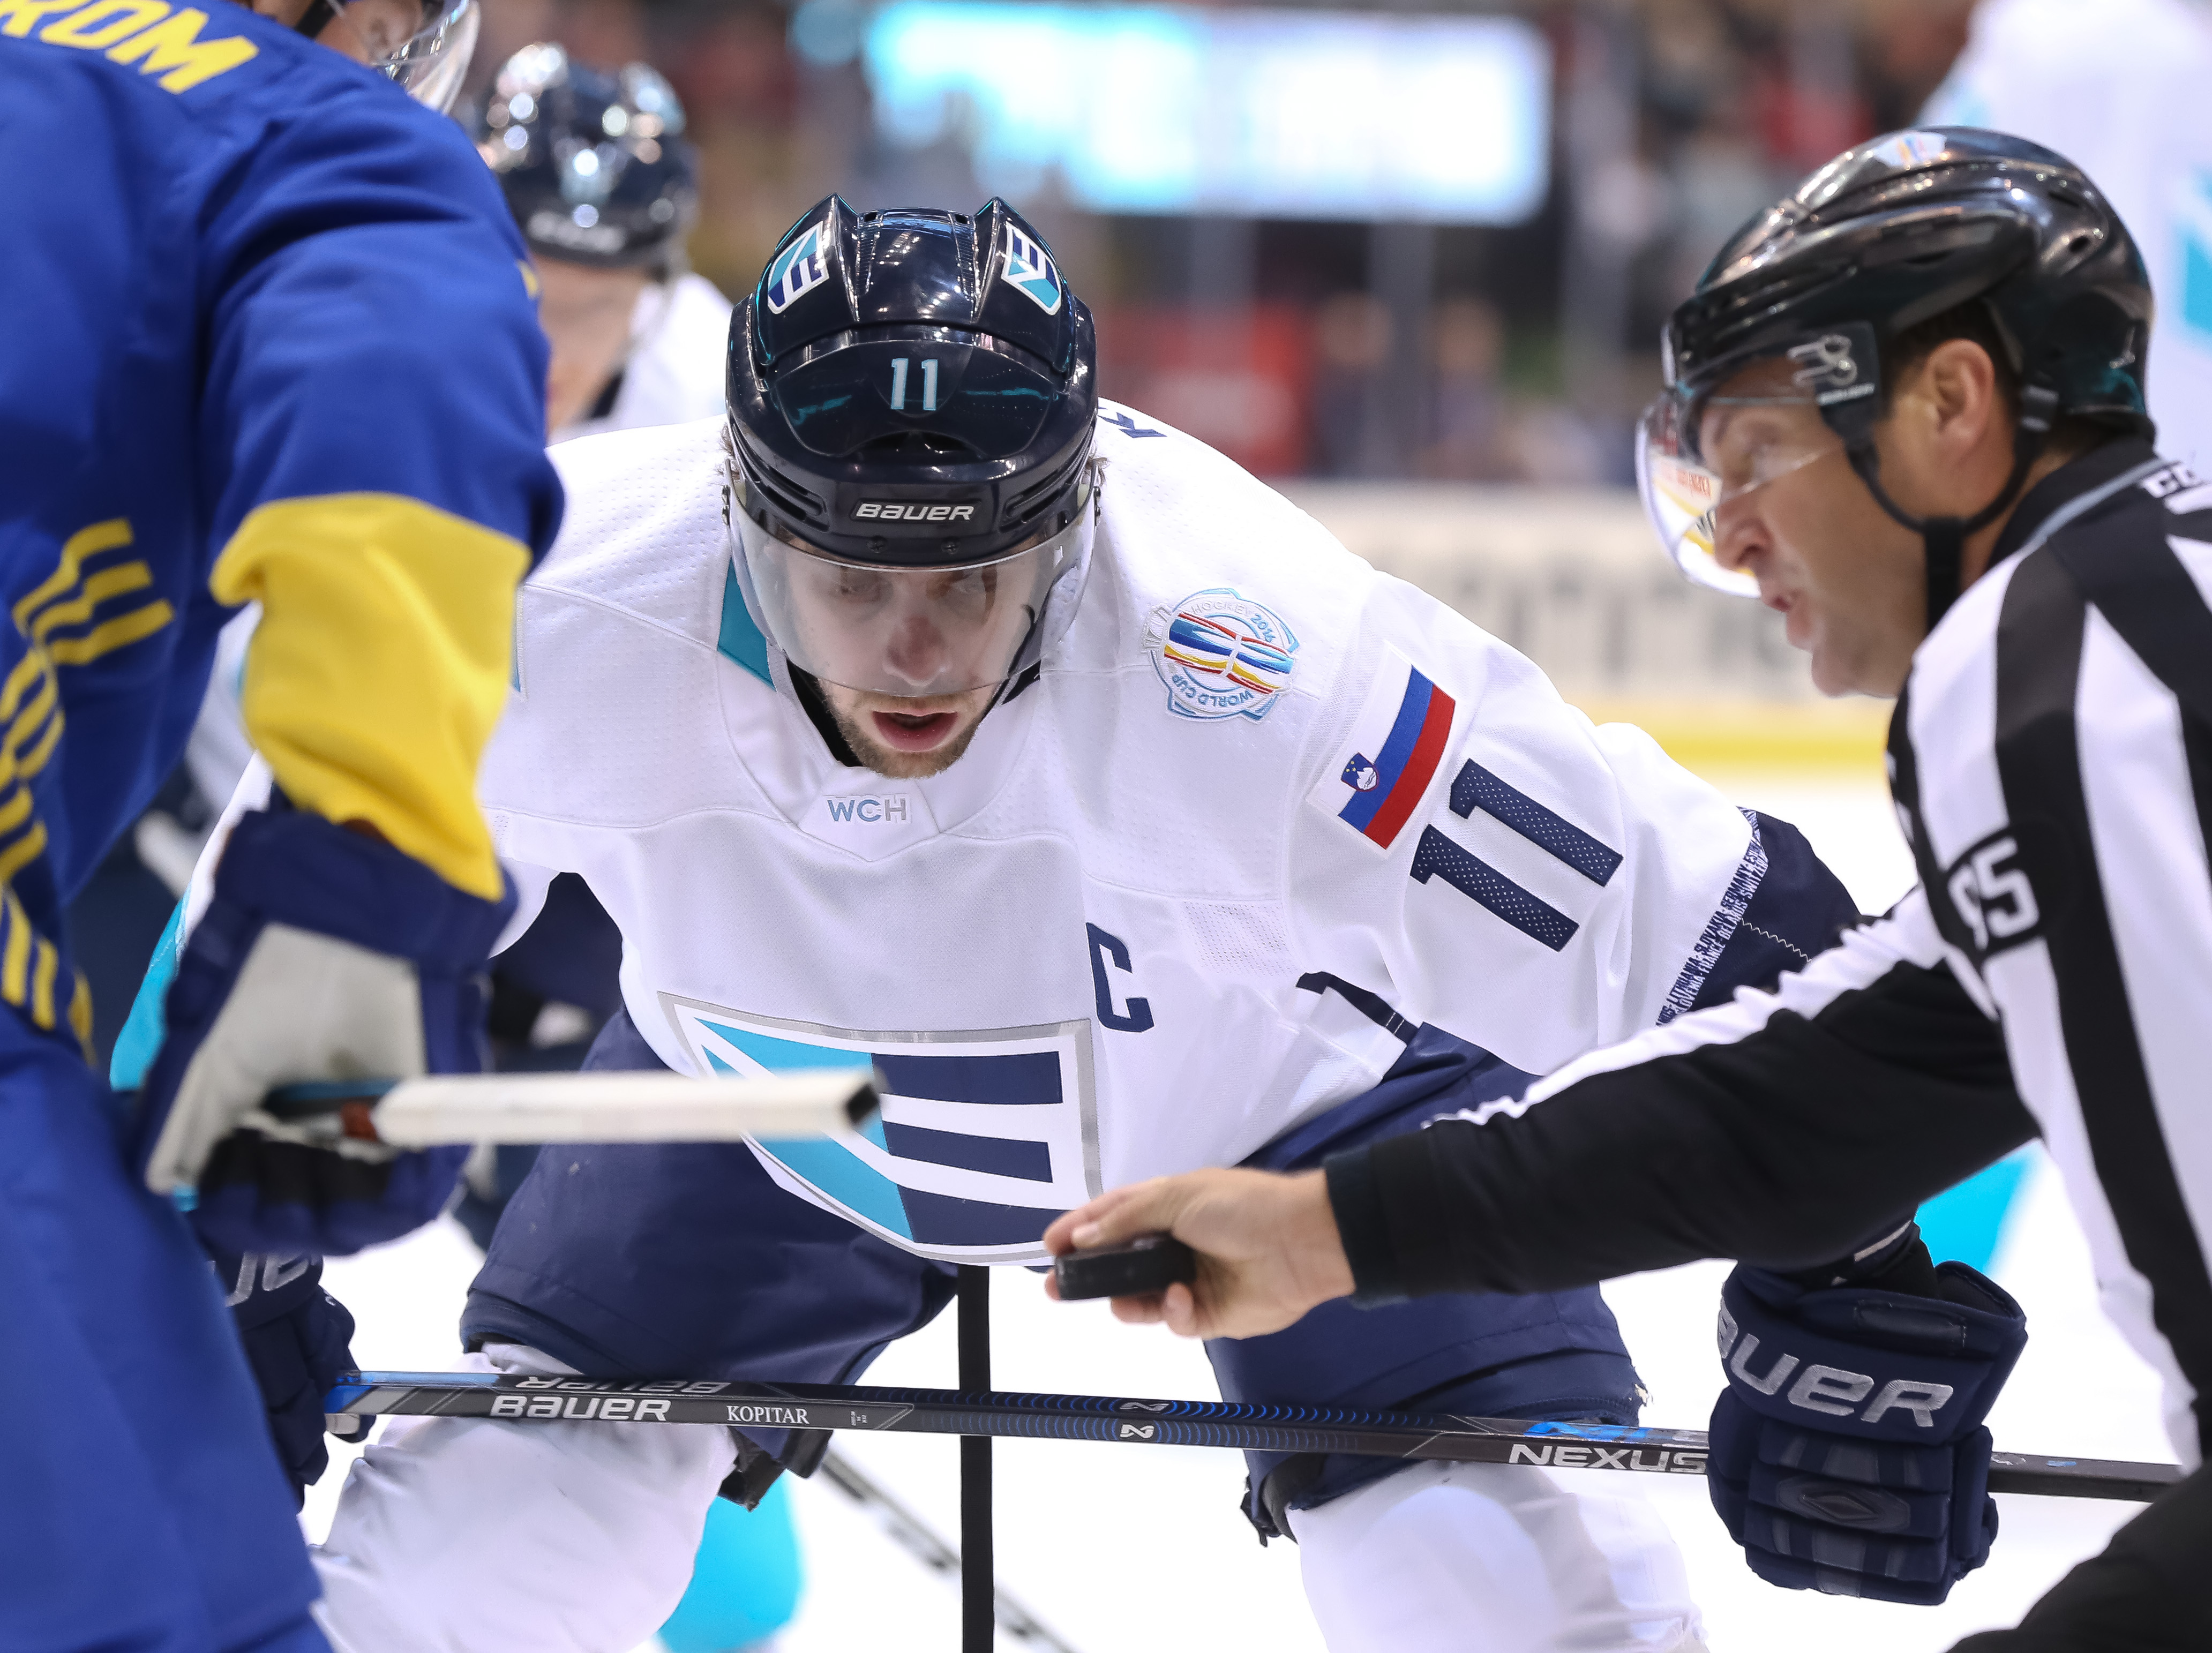 World Cup Of Hockey 2016 - Semifinals  Europe v Sweden